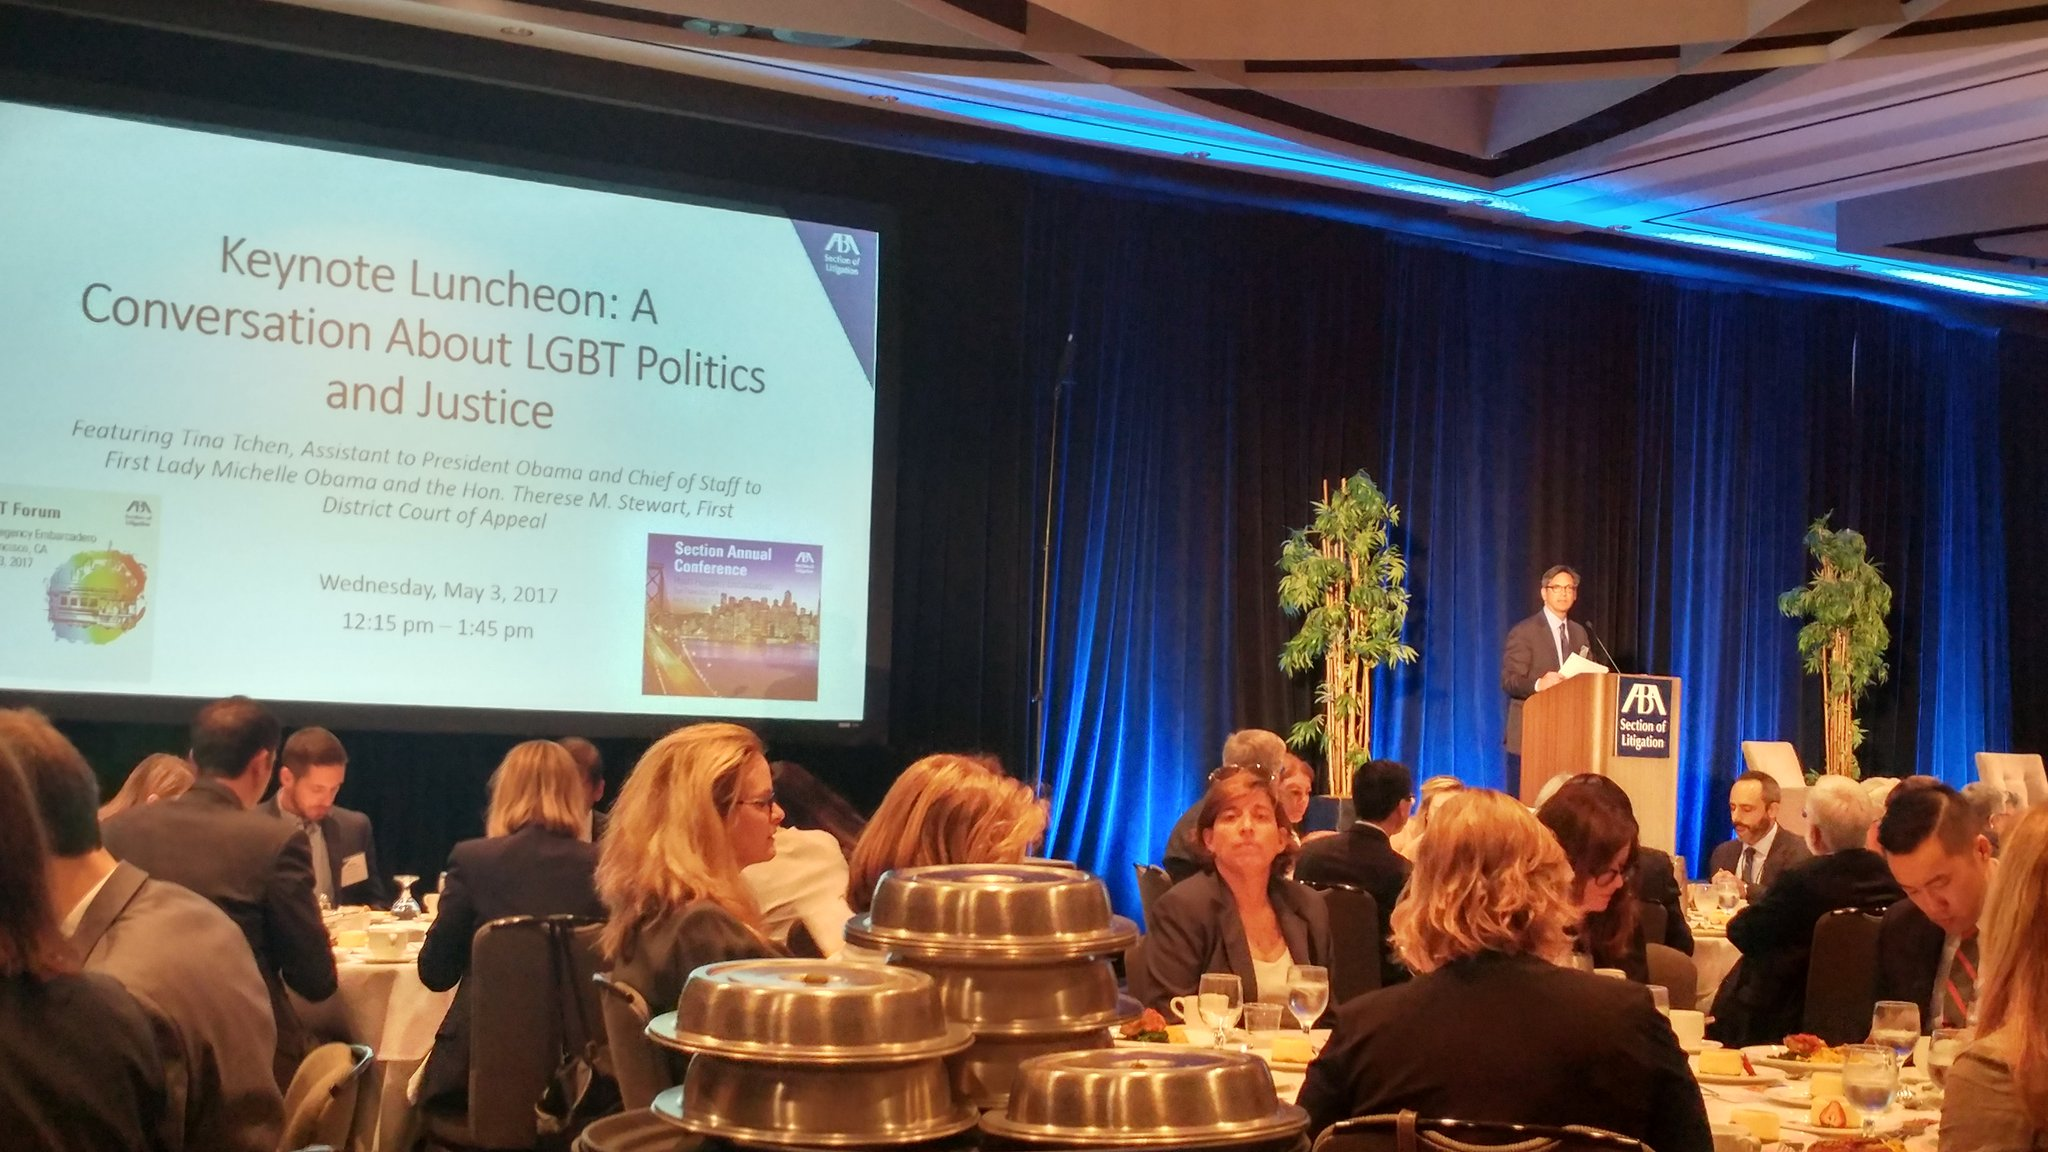 "@LPulgram ""Diversity is at the core of what the Section of Litigation does."" #ABALitigation #LitigationLGBT #LitigationSAC #solosmallfirmlit https://t.co/aIKHaQrXox"